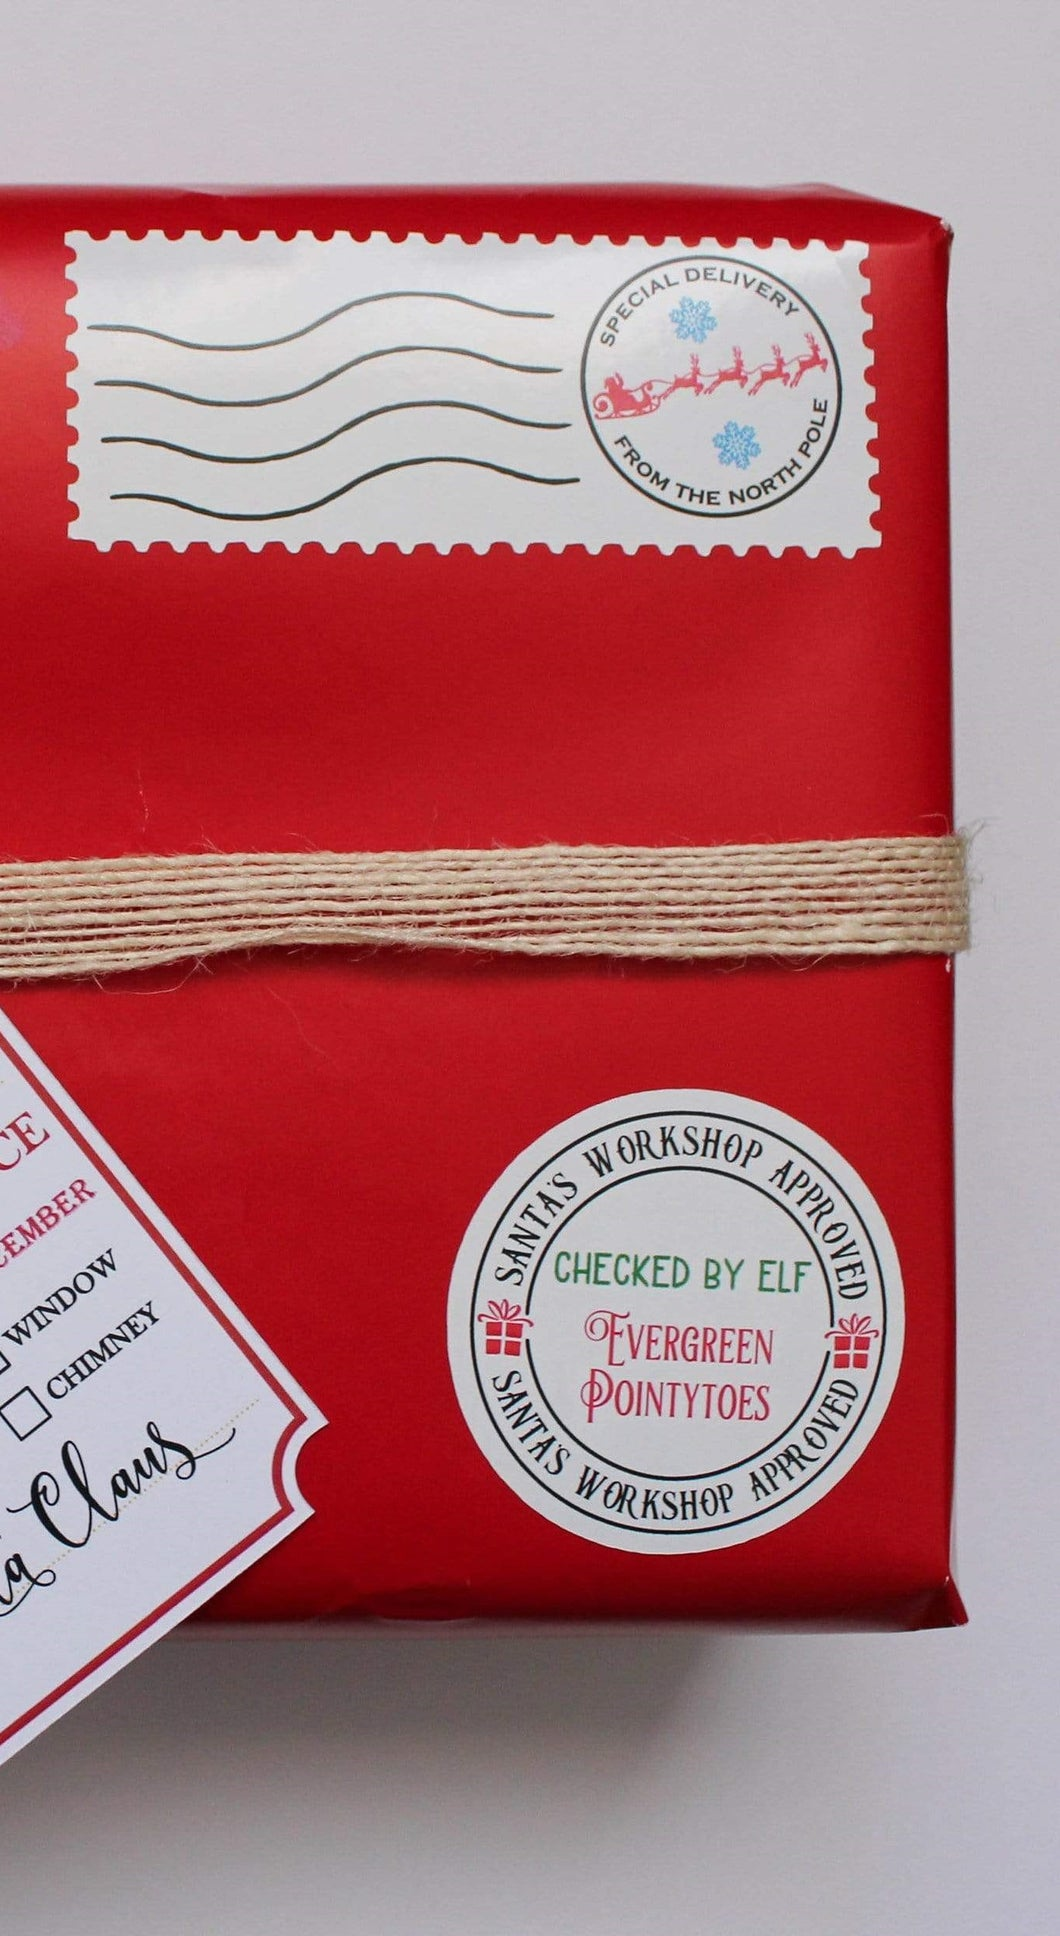 North Pole Stamp & Elf Approved Sticker Set